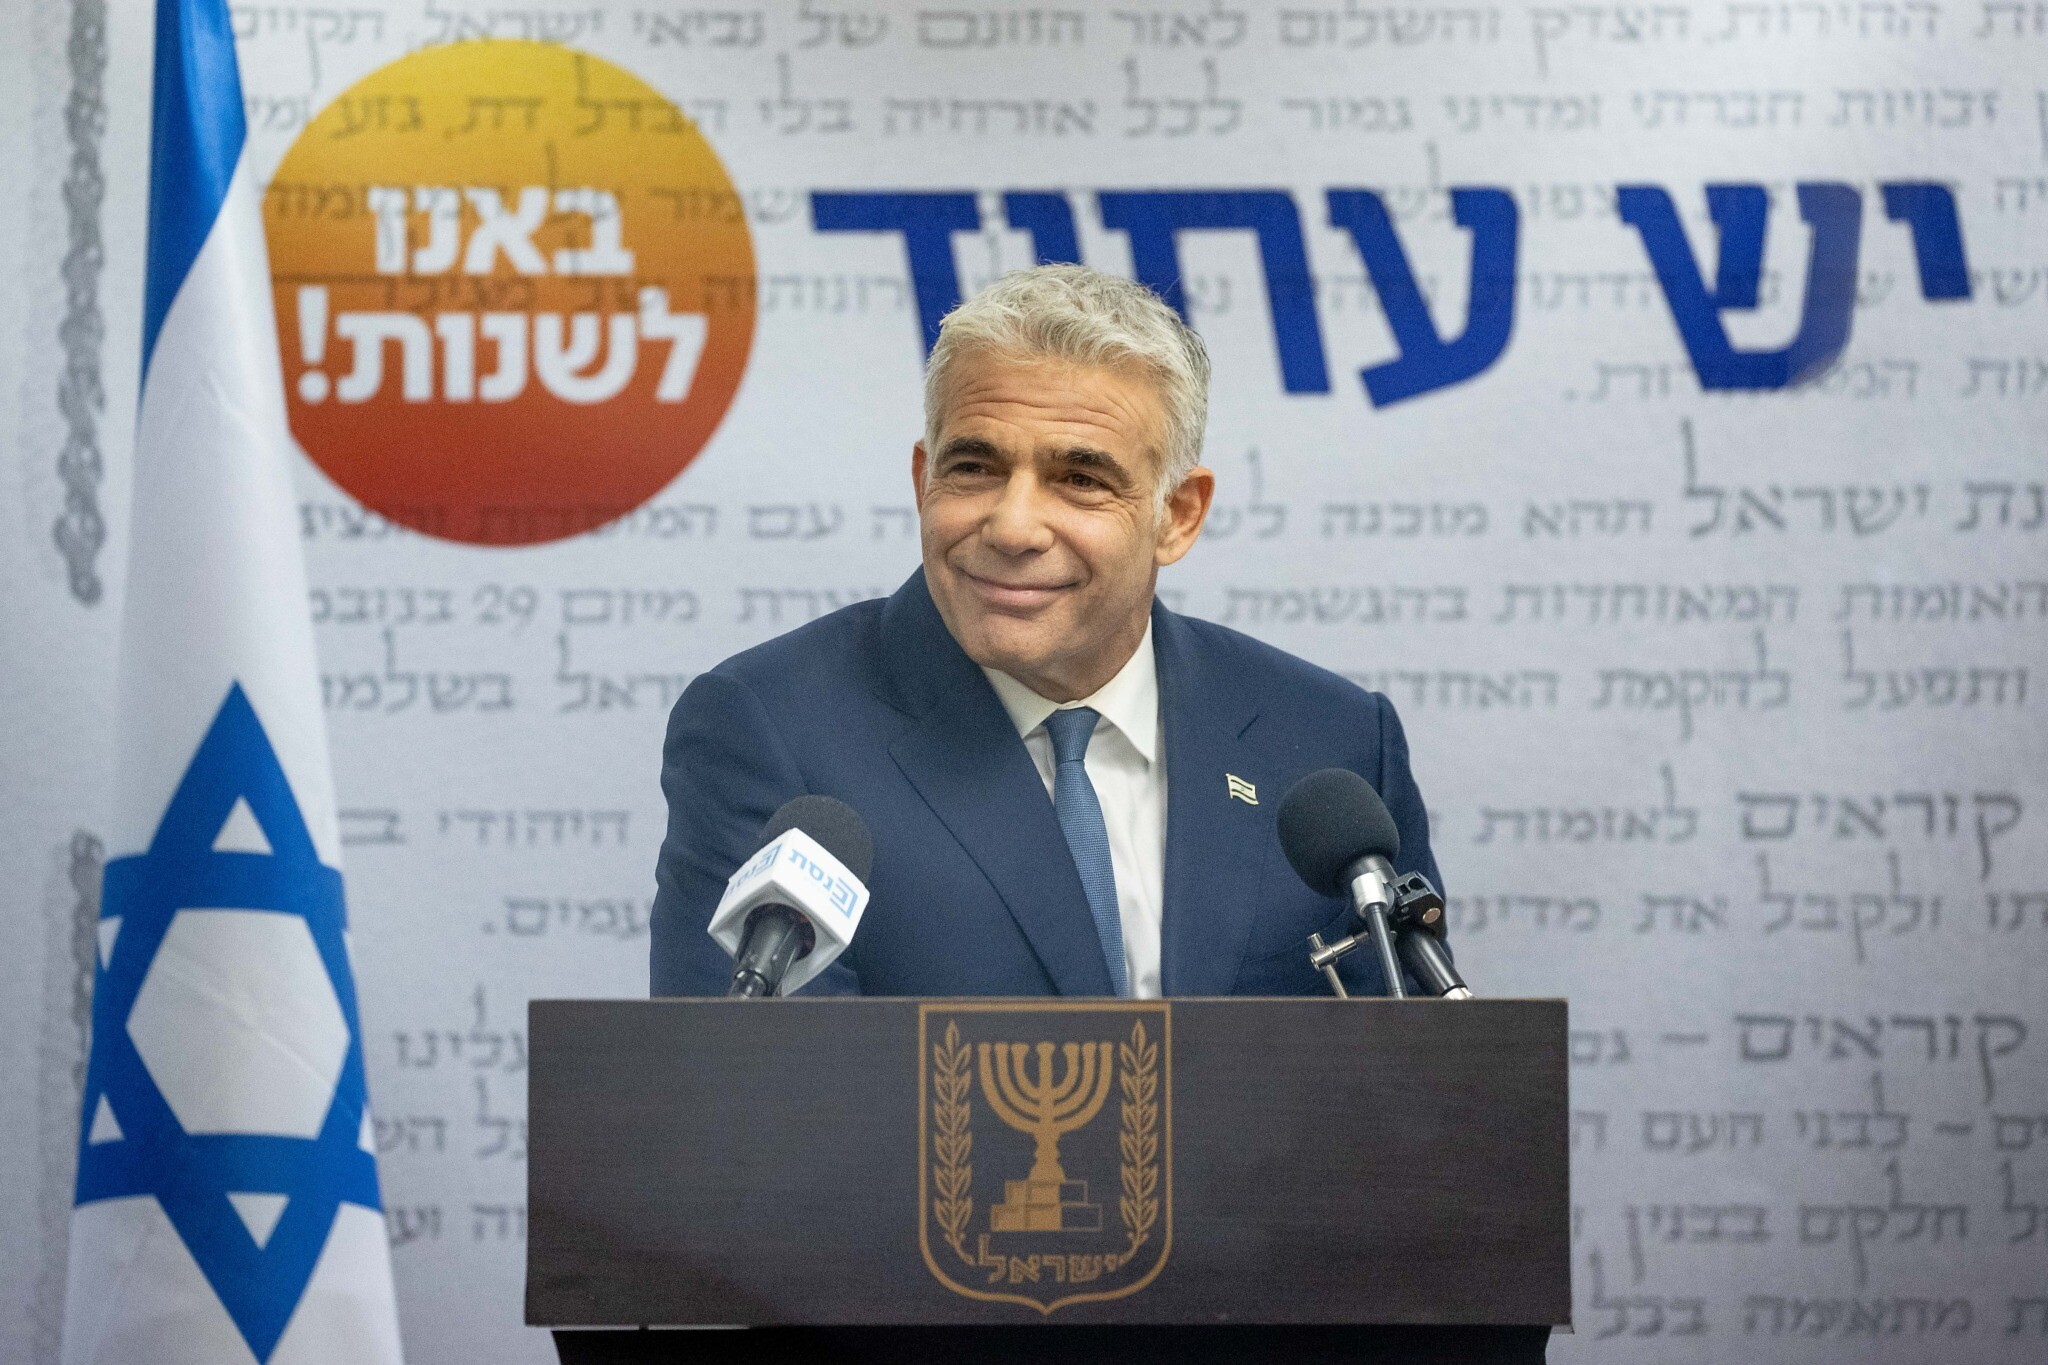 Midnight deadline approaches for Israeli coalition to unite and challenge Netanyahu